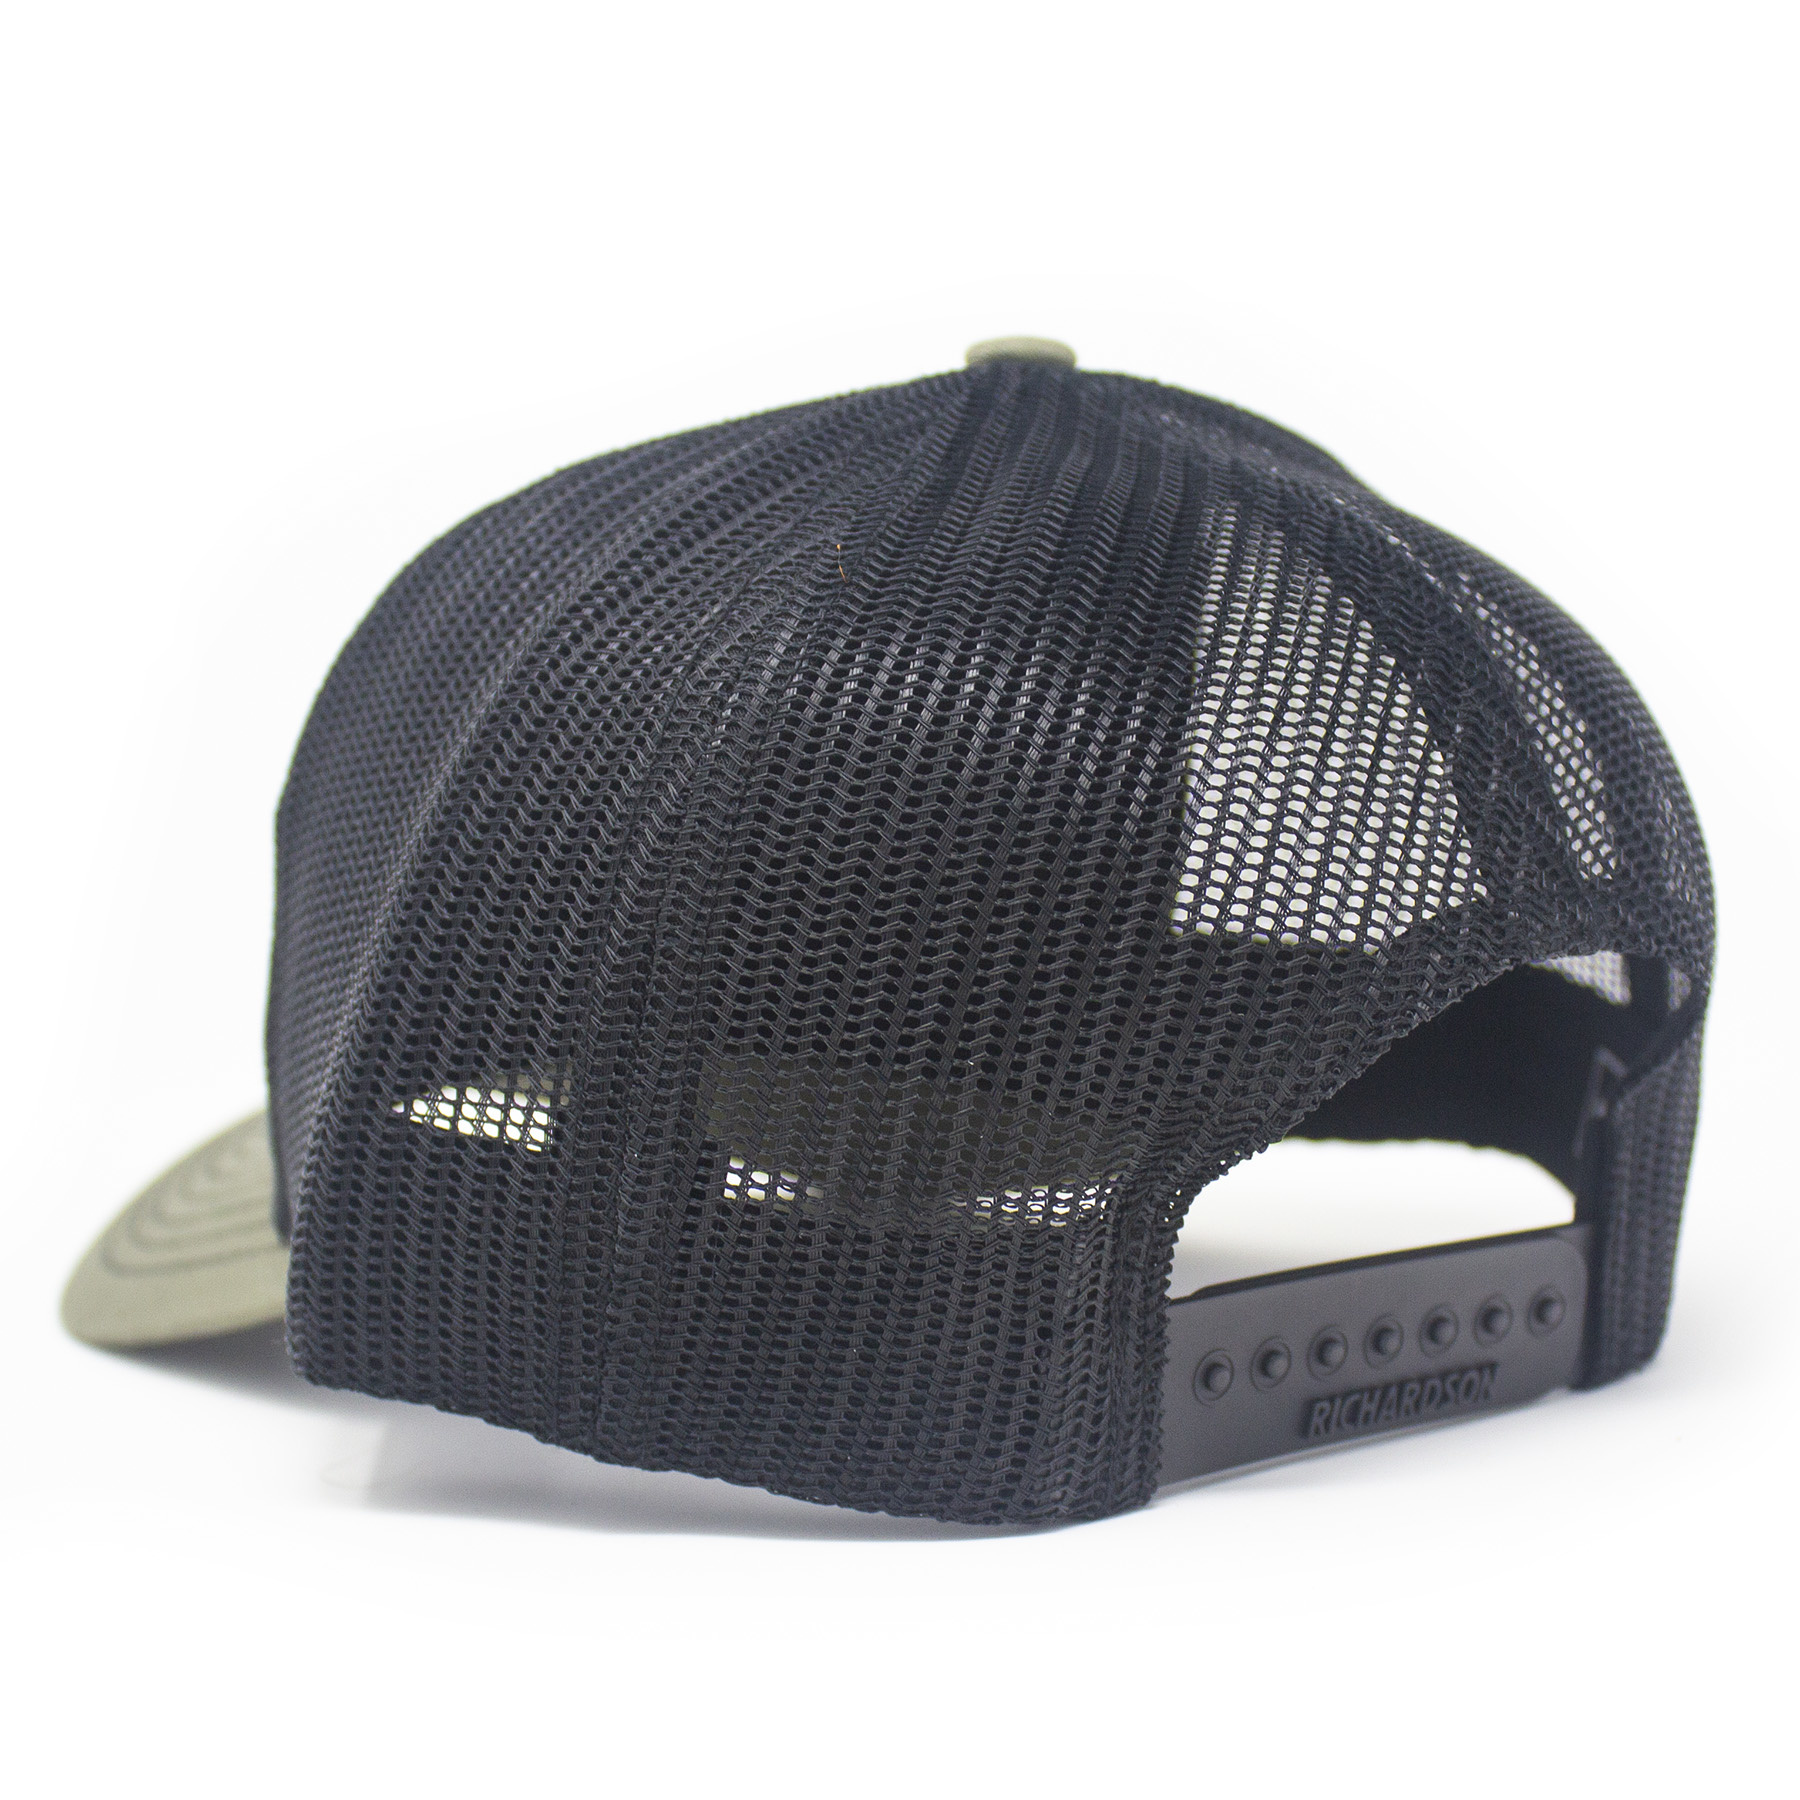 Leather Patch Trucker Hat, Don't Tread on Me, Loden/Black-2